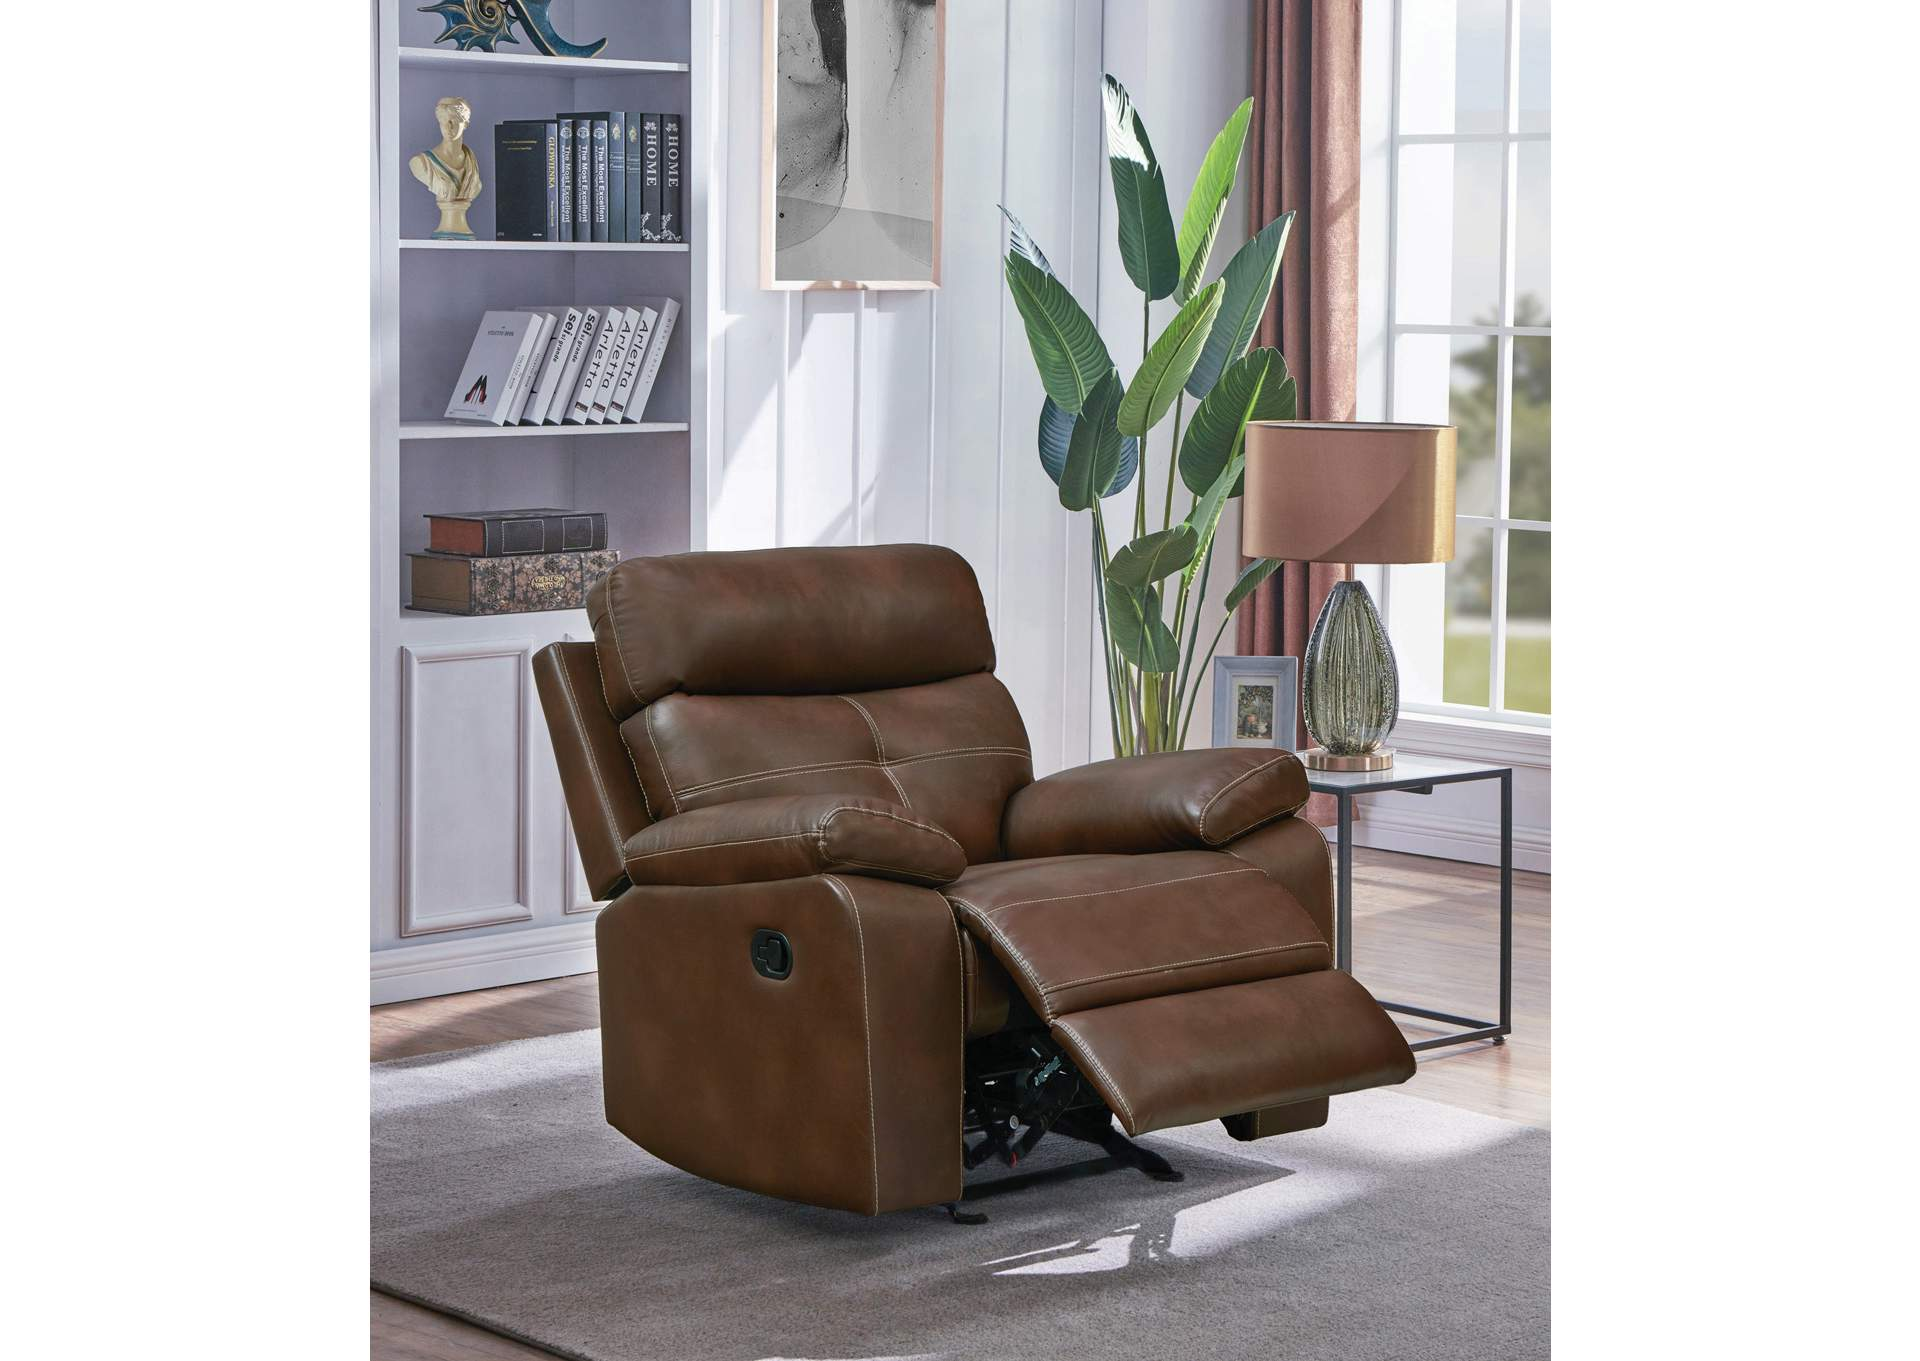 Jarons Damiano Brown Recliner